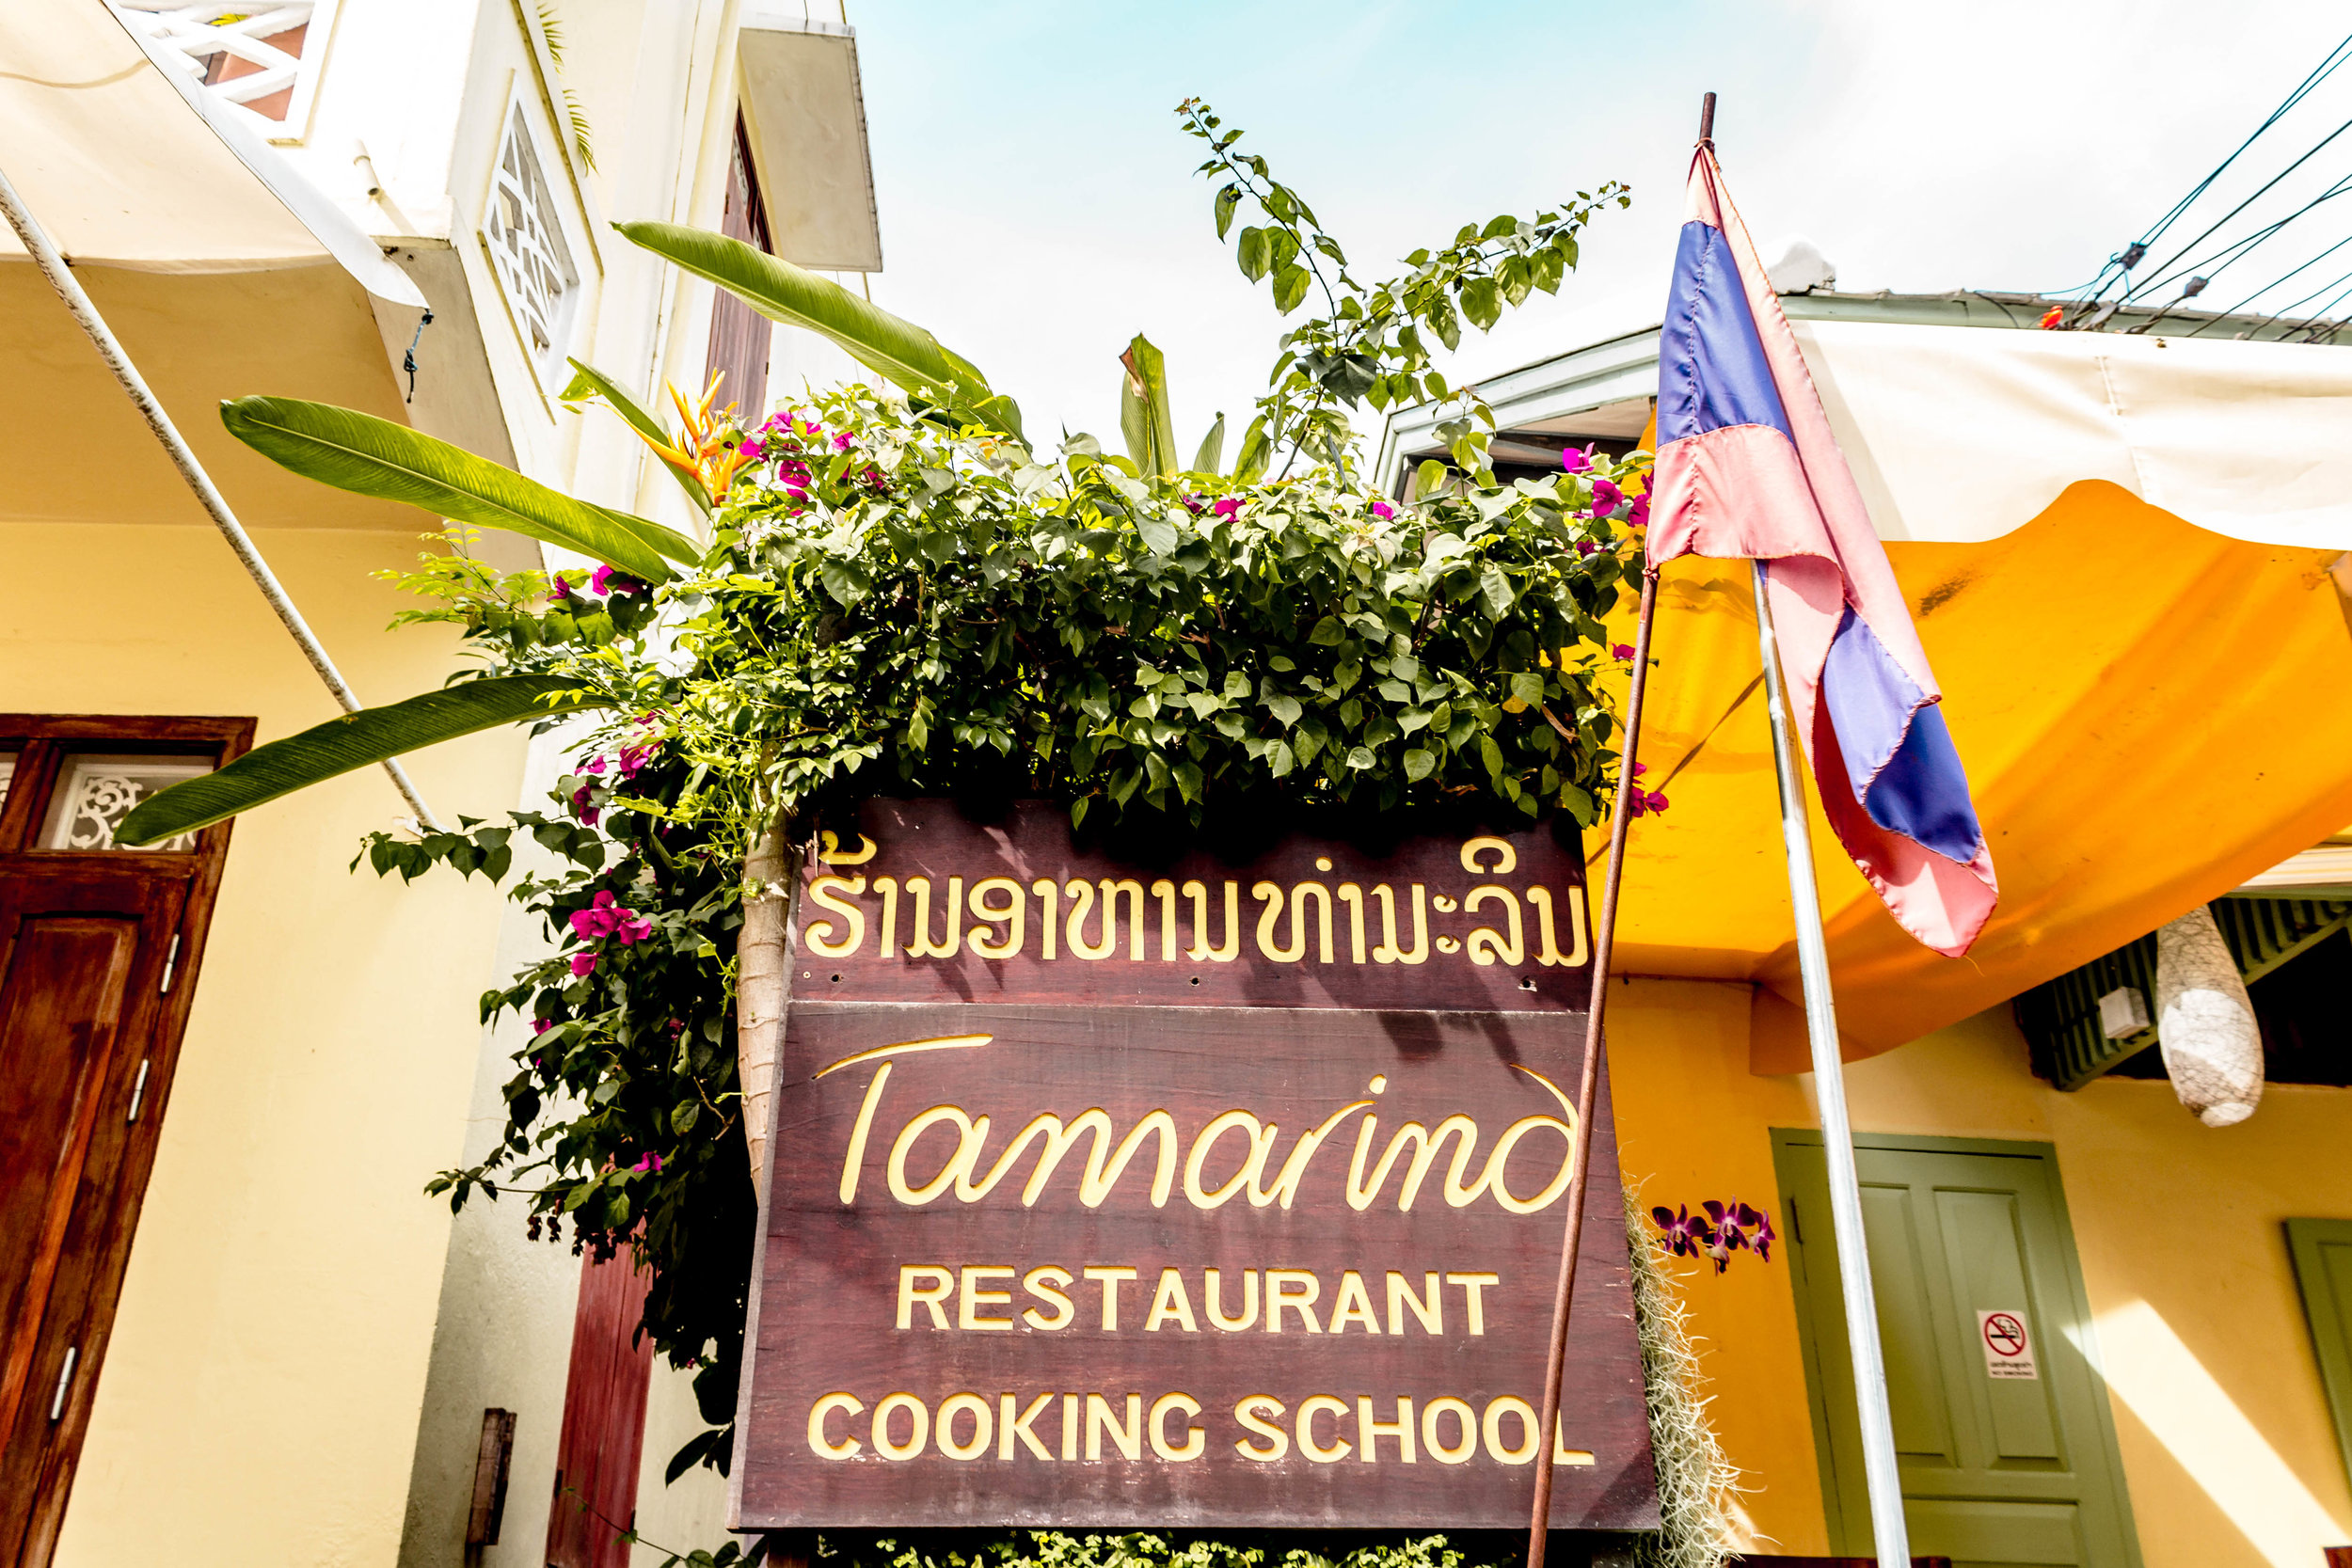 Tamarind Cooking School in Laos